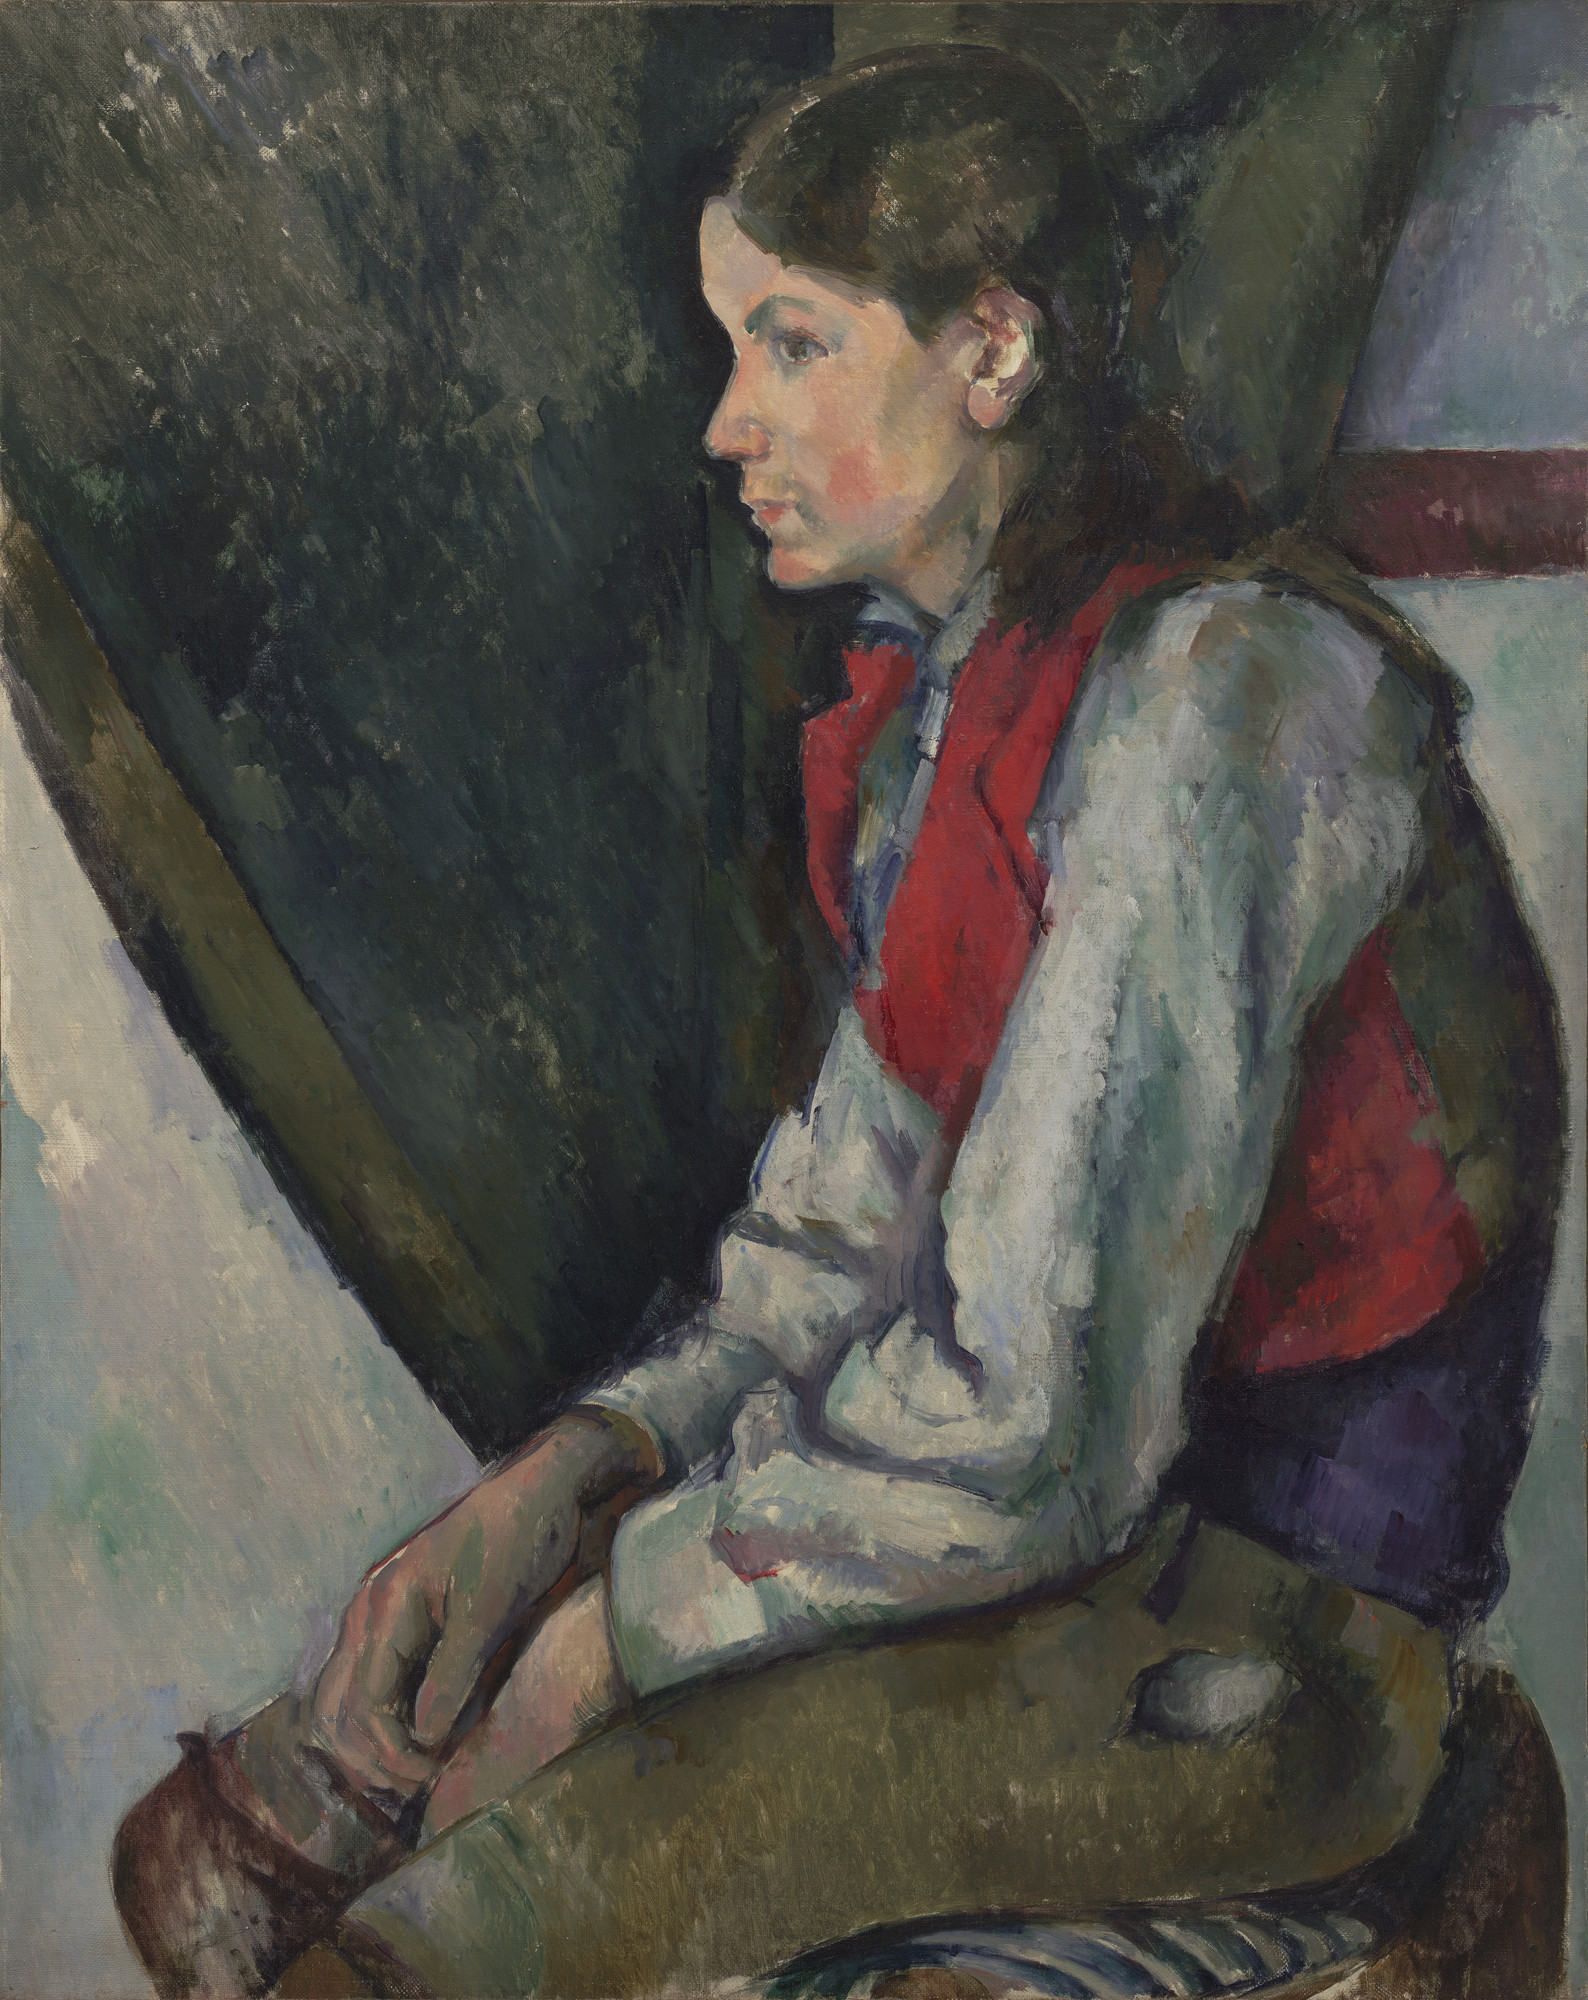 Paul Cézanne. Boy in a Red Vest. 1888-90